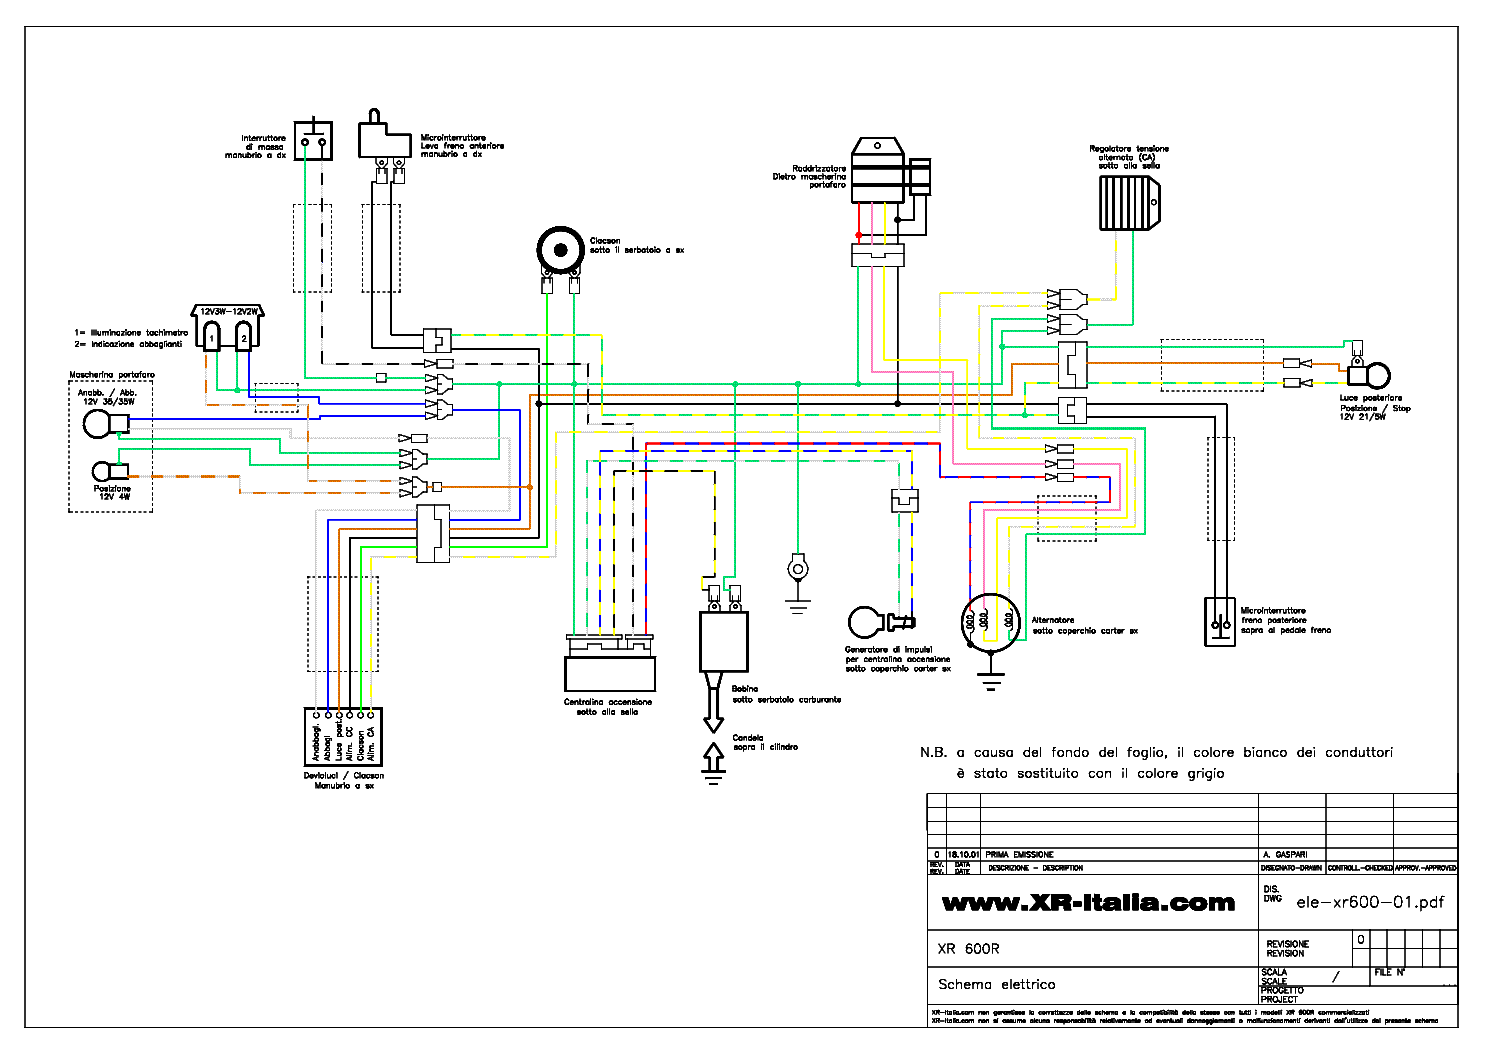 honda_xr_600.pdf_1?resize\=665%2C470\&ssl\=1 6 wire cdi box diagram wiring diagram shrutiradio 7 Pin CDI Wiring Diagram at pacquiaovsvargaslive.co